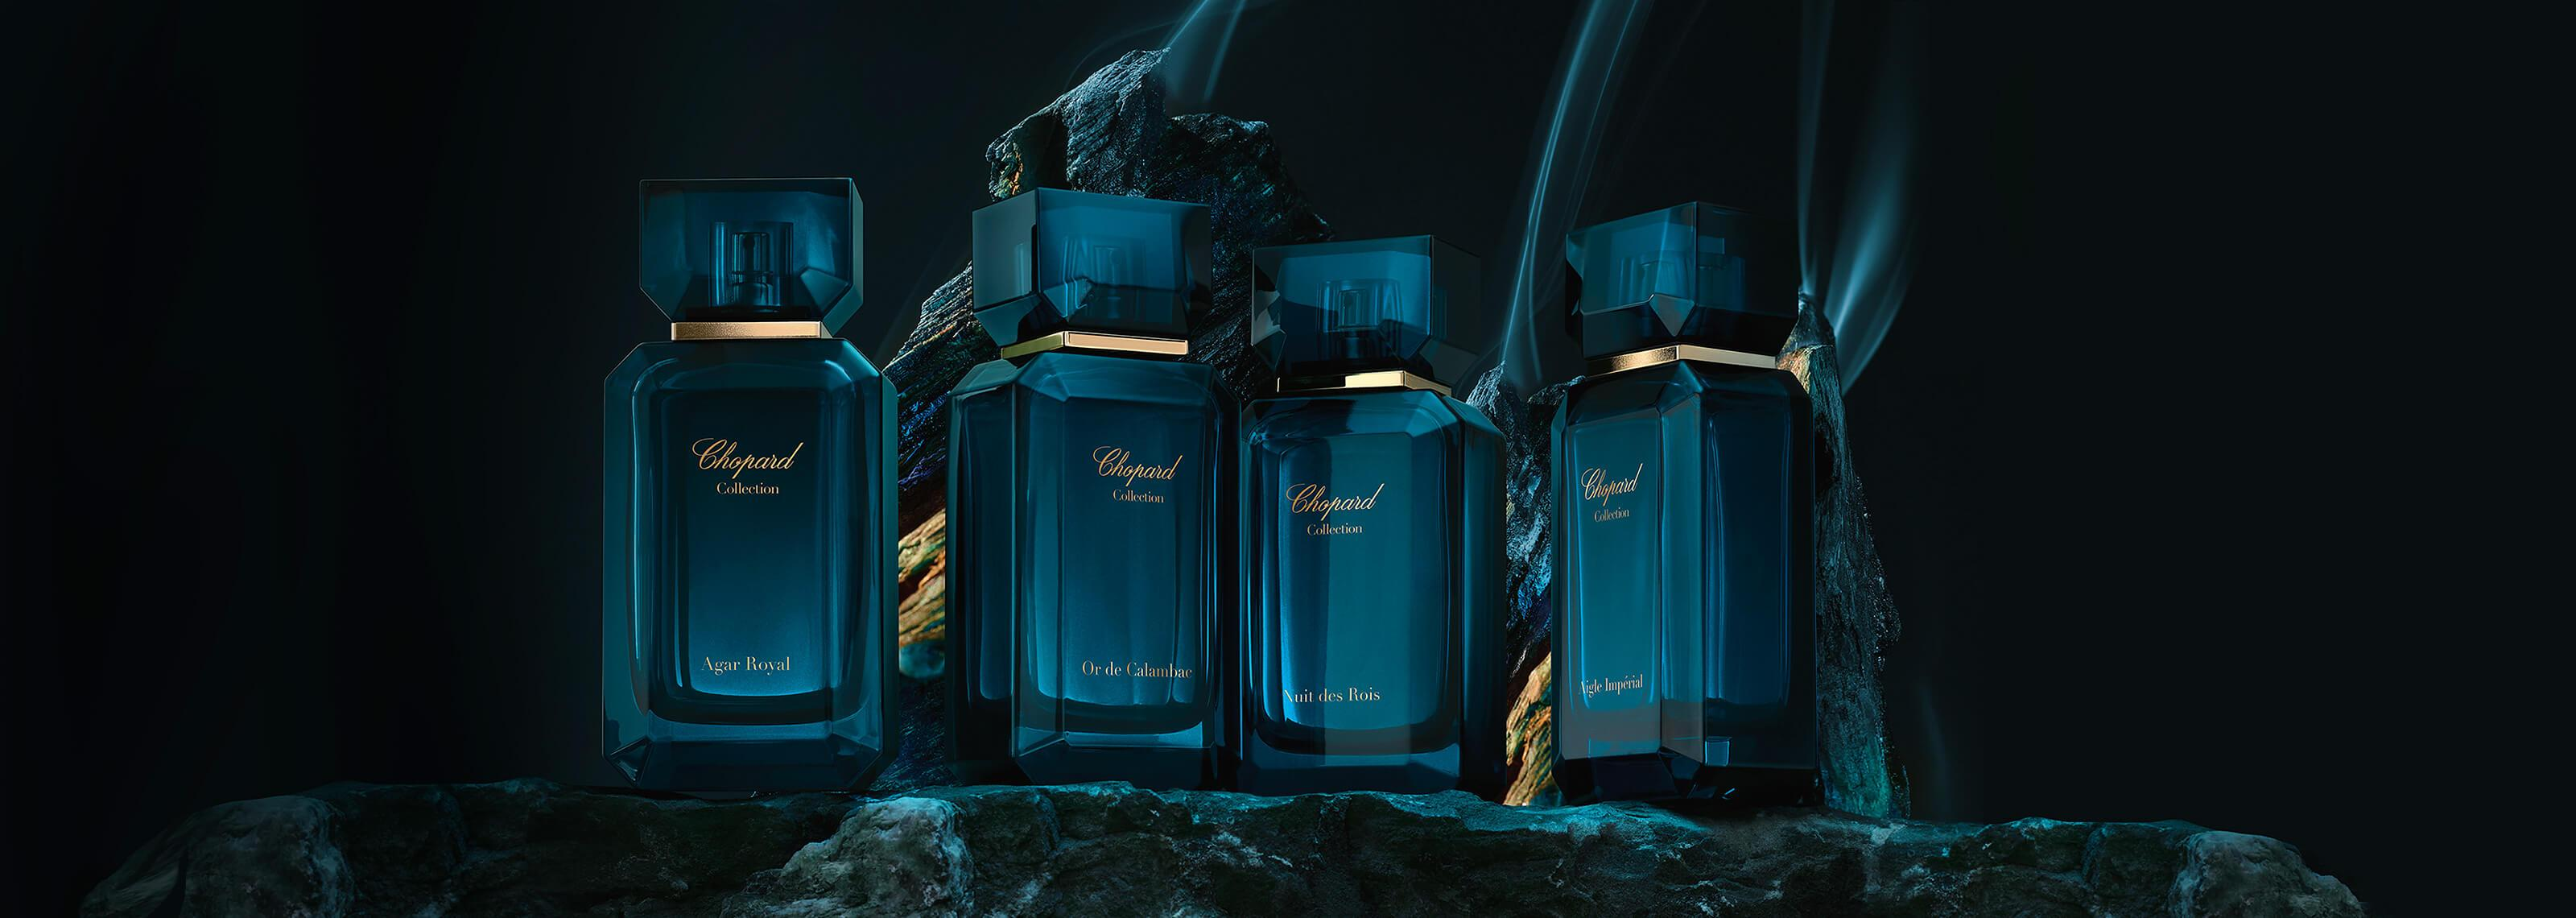 NEW HAUTE PARFUMERIE COLLECTION</br>GARDENS OF THE KINGS